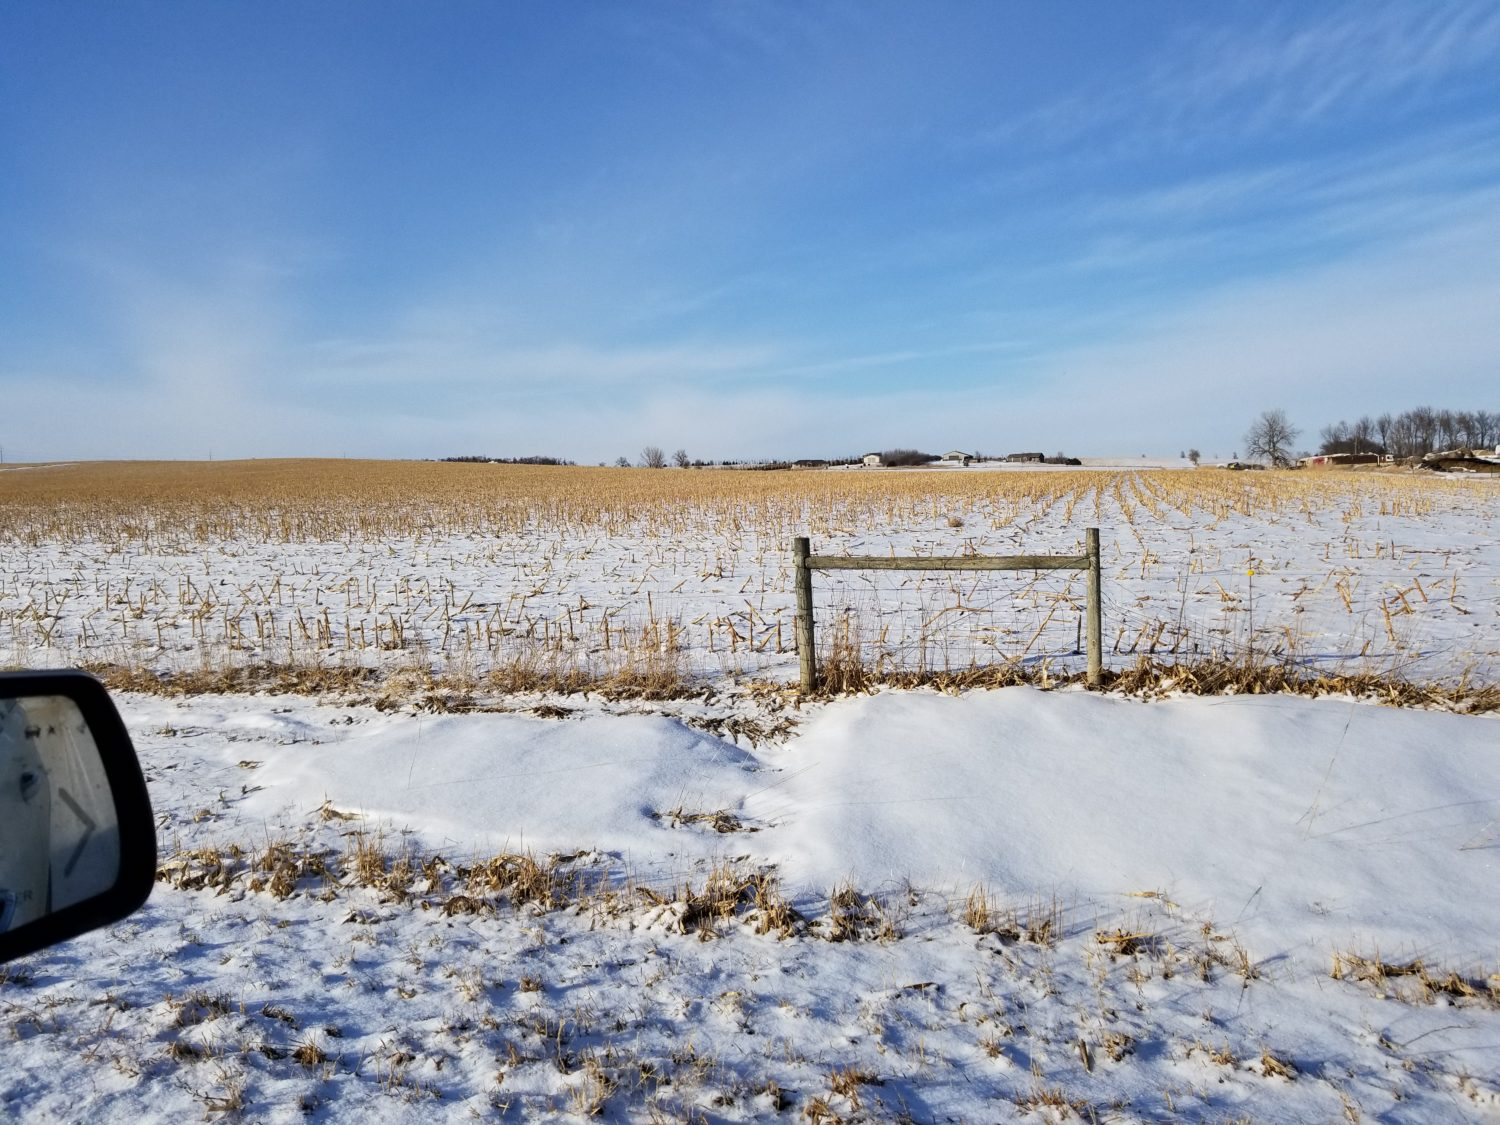 73.2 Acres Minnehaha County Land At Auction! Tillable-Pasture-Building Sites! SOLD 9250.00/acre - image 3